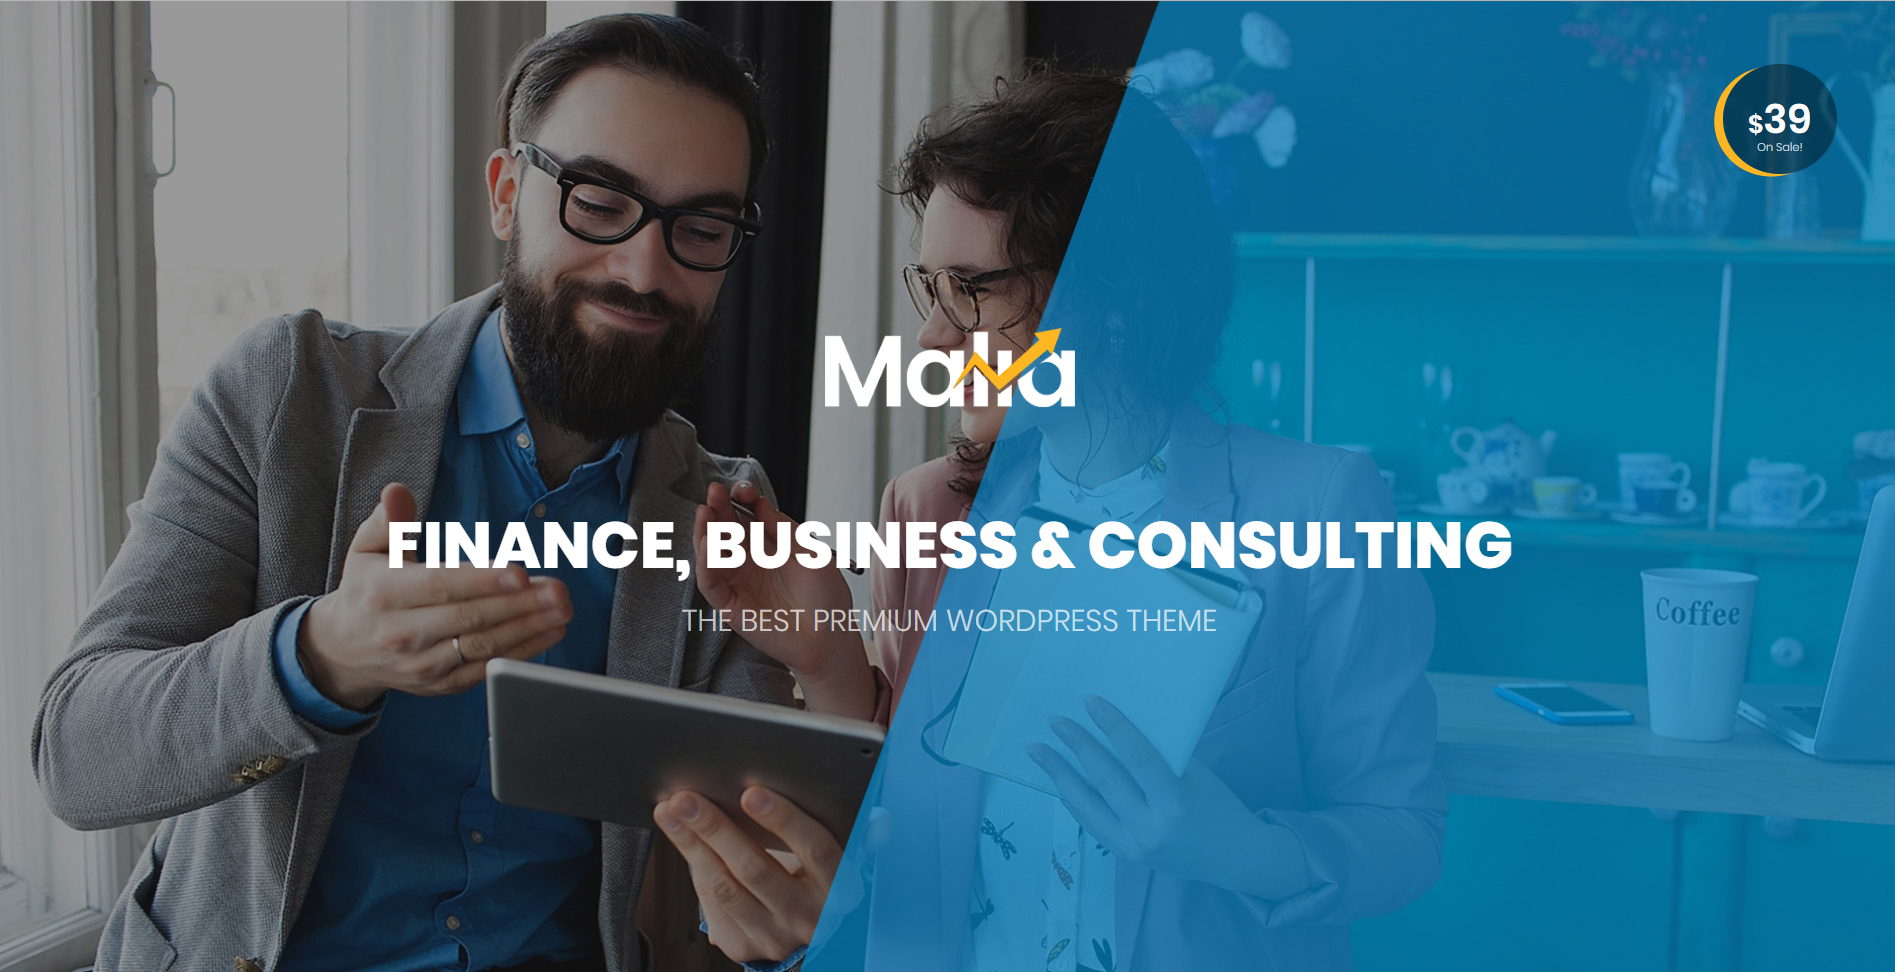 32. Malia - A Powerful Business and Finance WordPress Theme